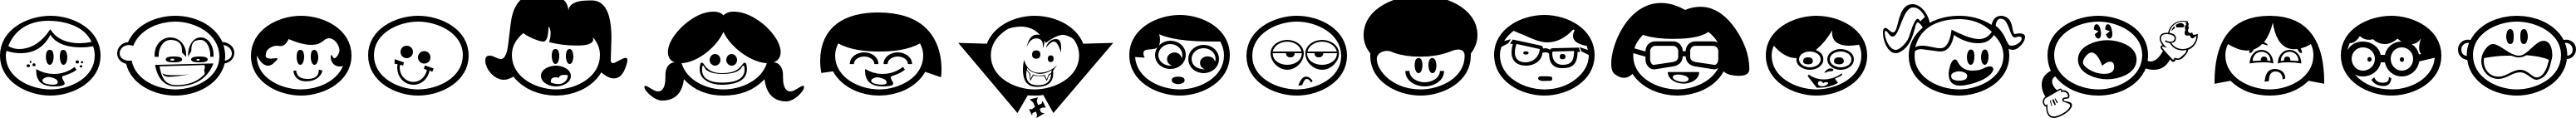 Chickabiddies